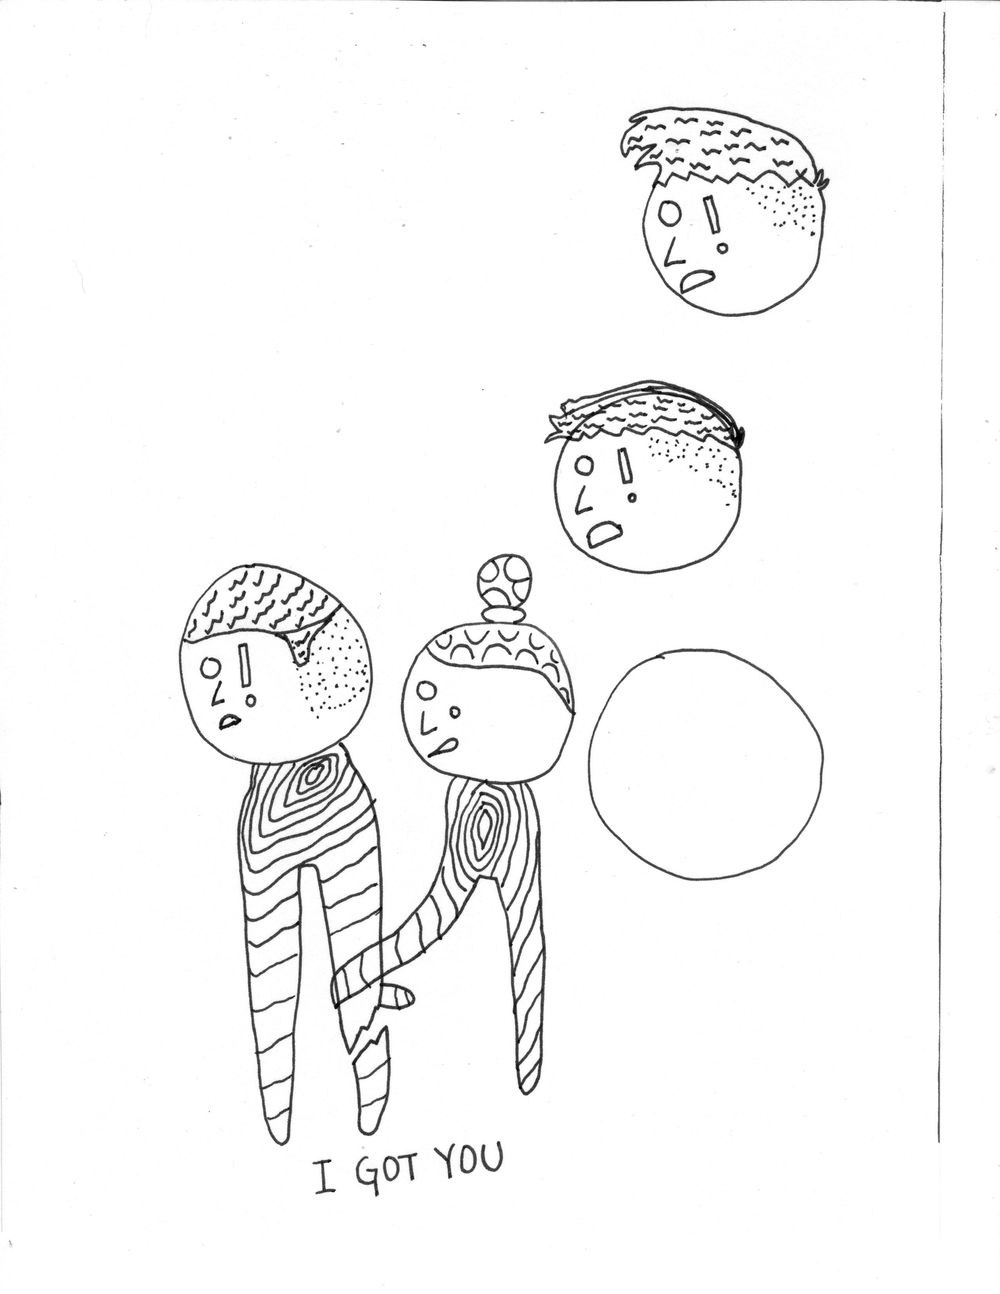 Clothespin Chums - image 4 - student project